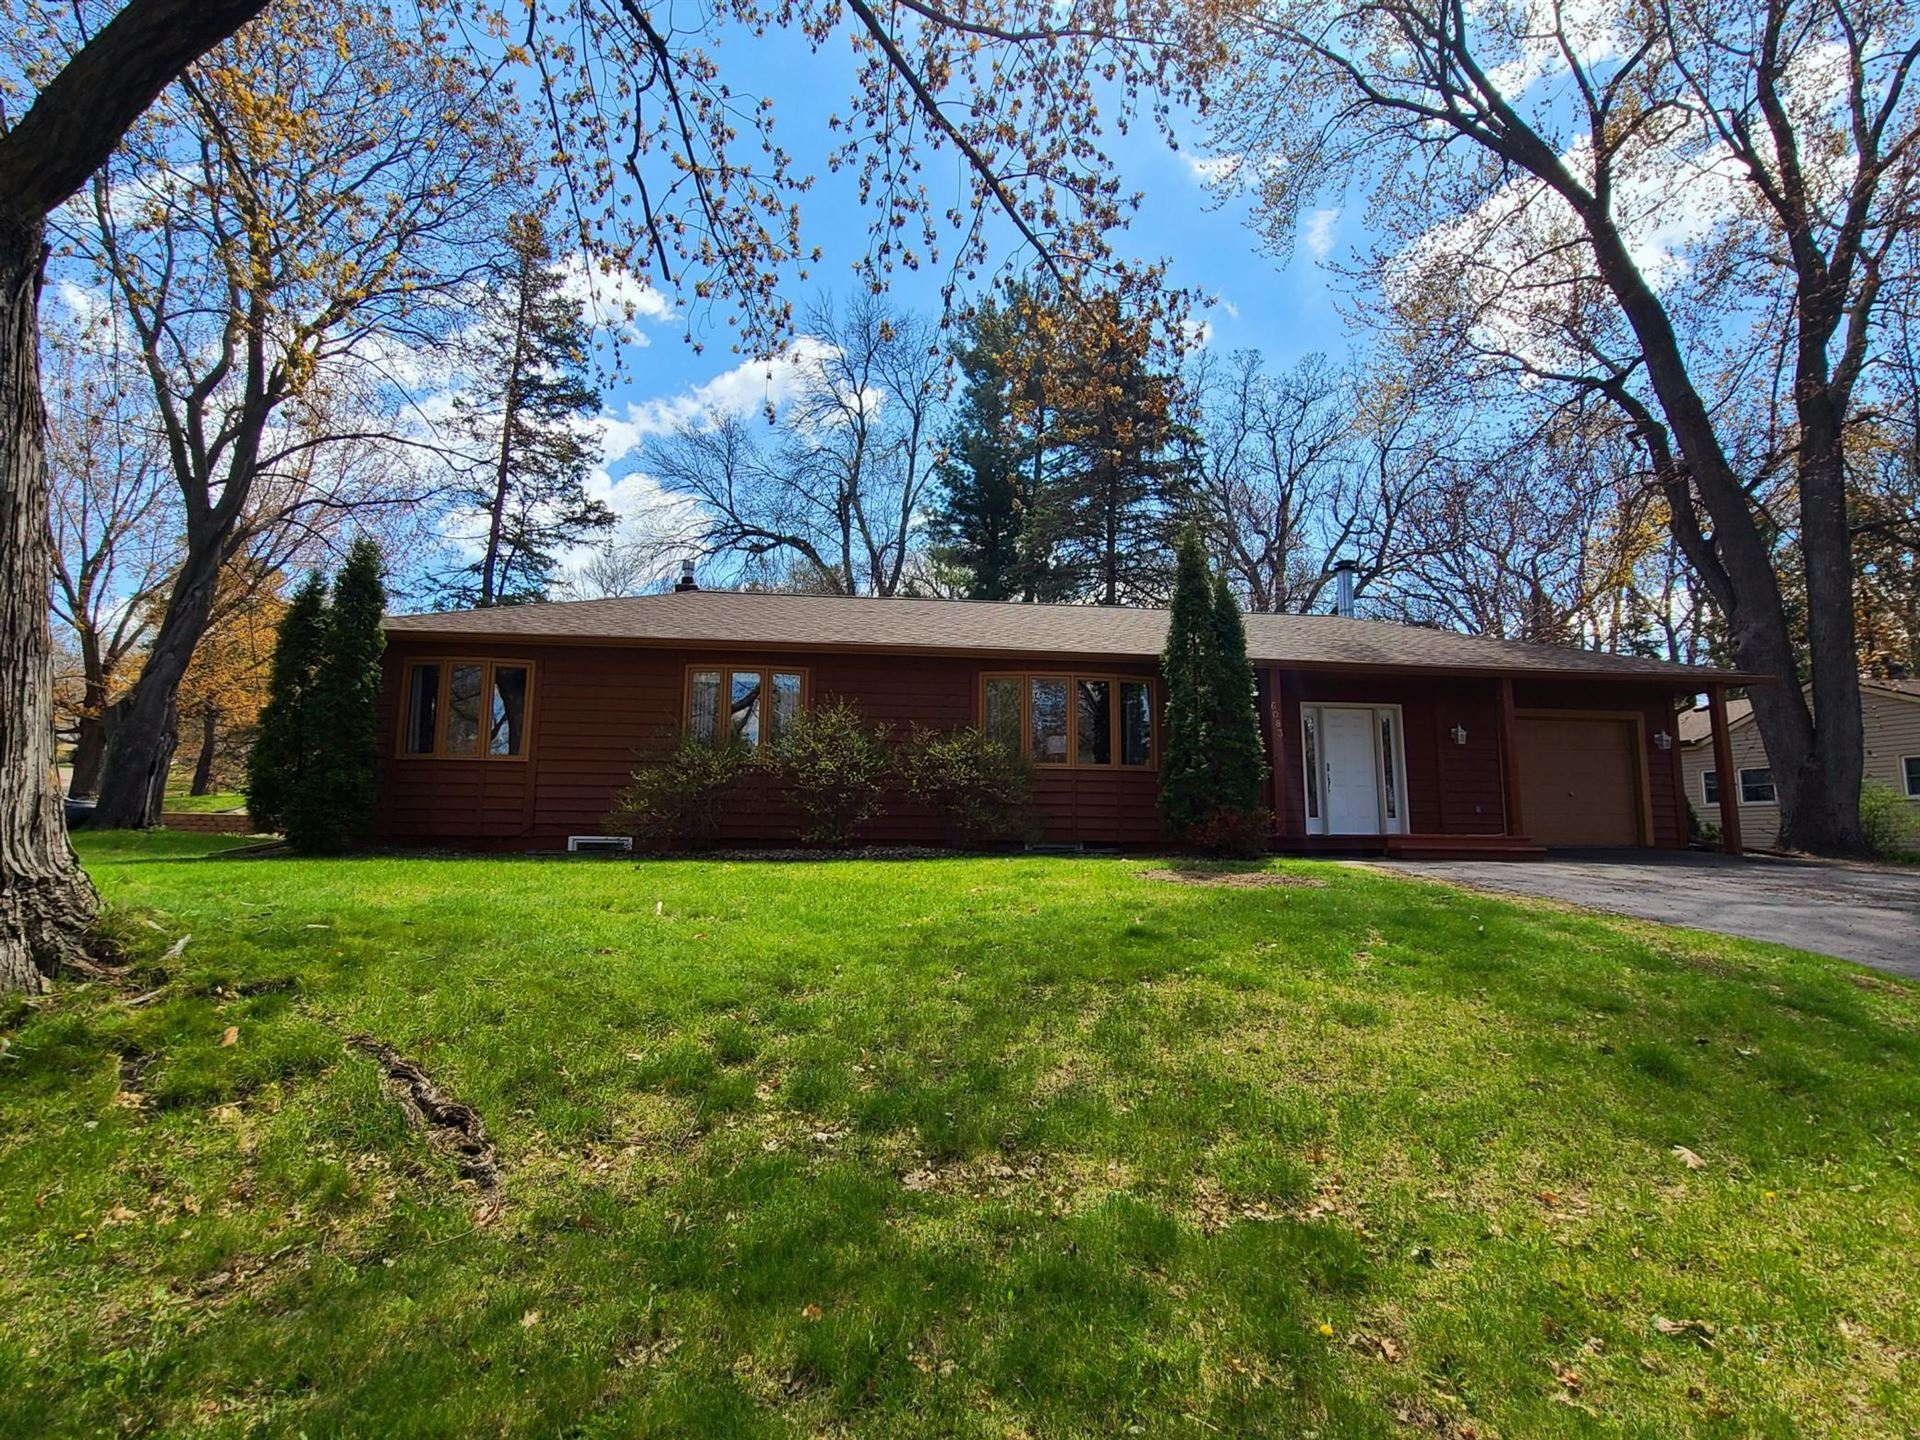 6083 Woody Lane NE, Fridley, MN 55432 - MLS#: 5752164